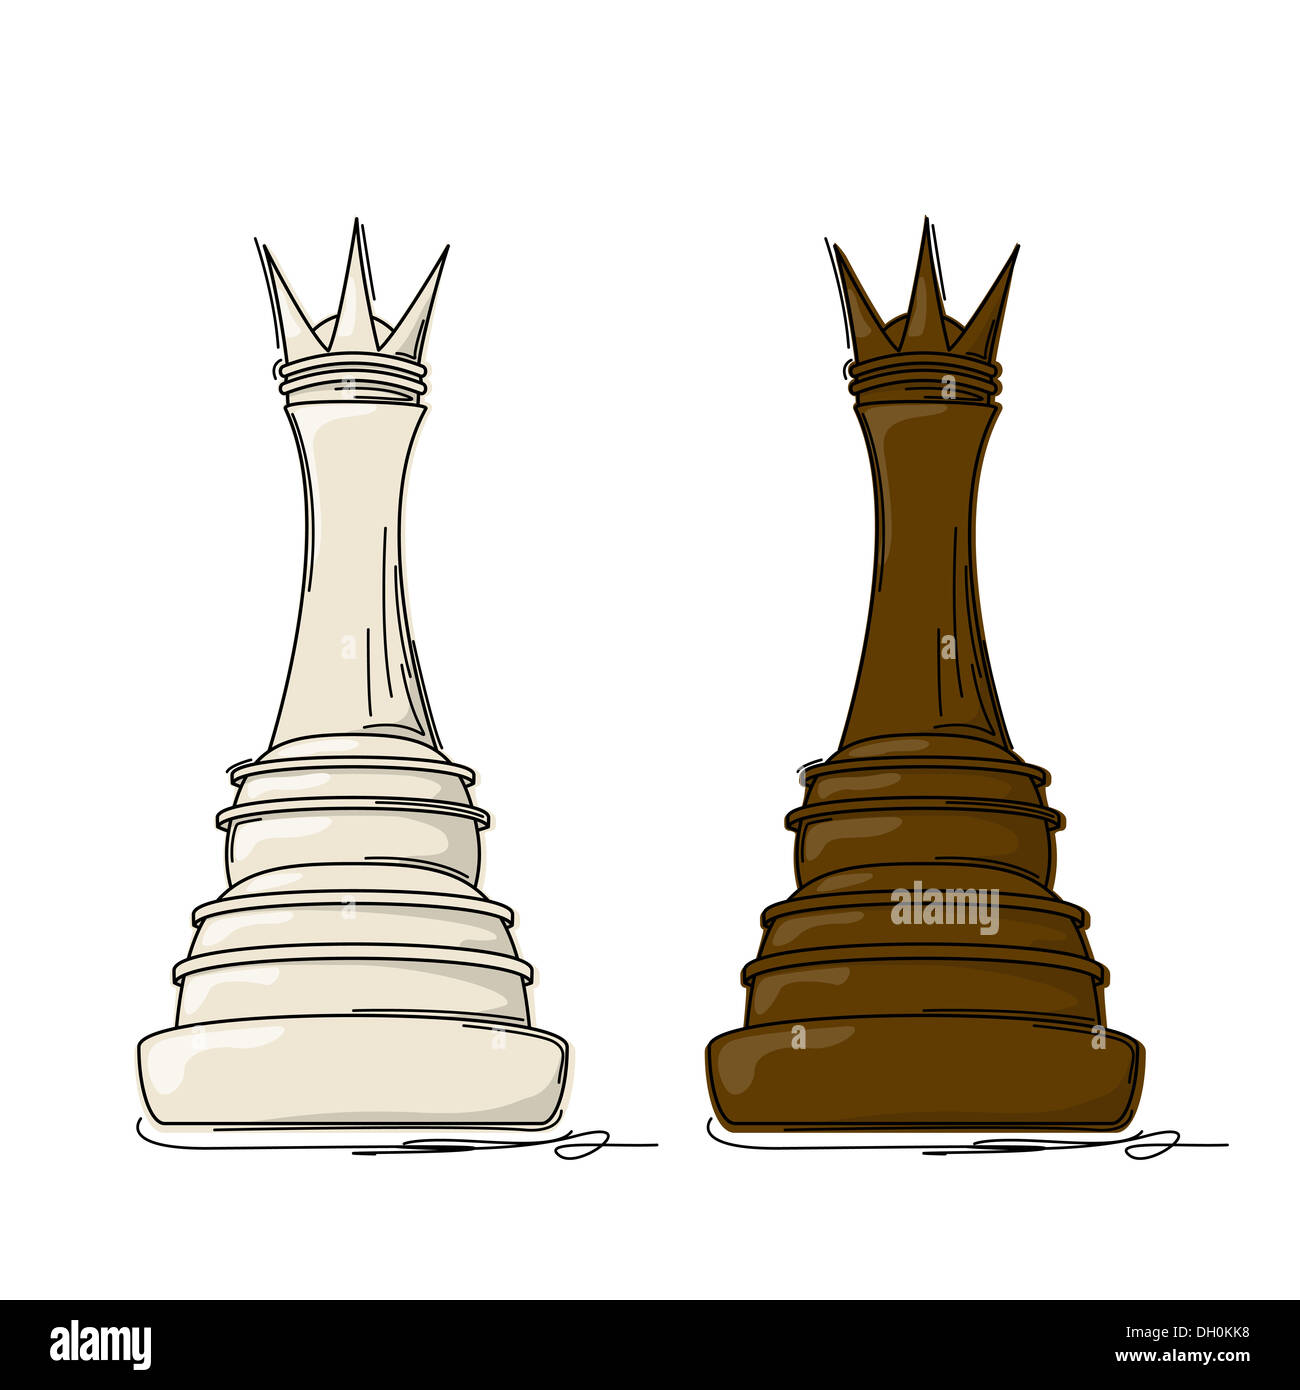 Chess queen - Stock Image